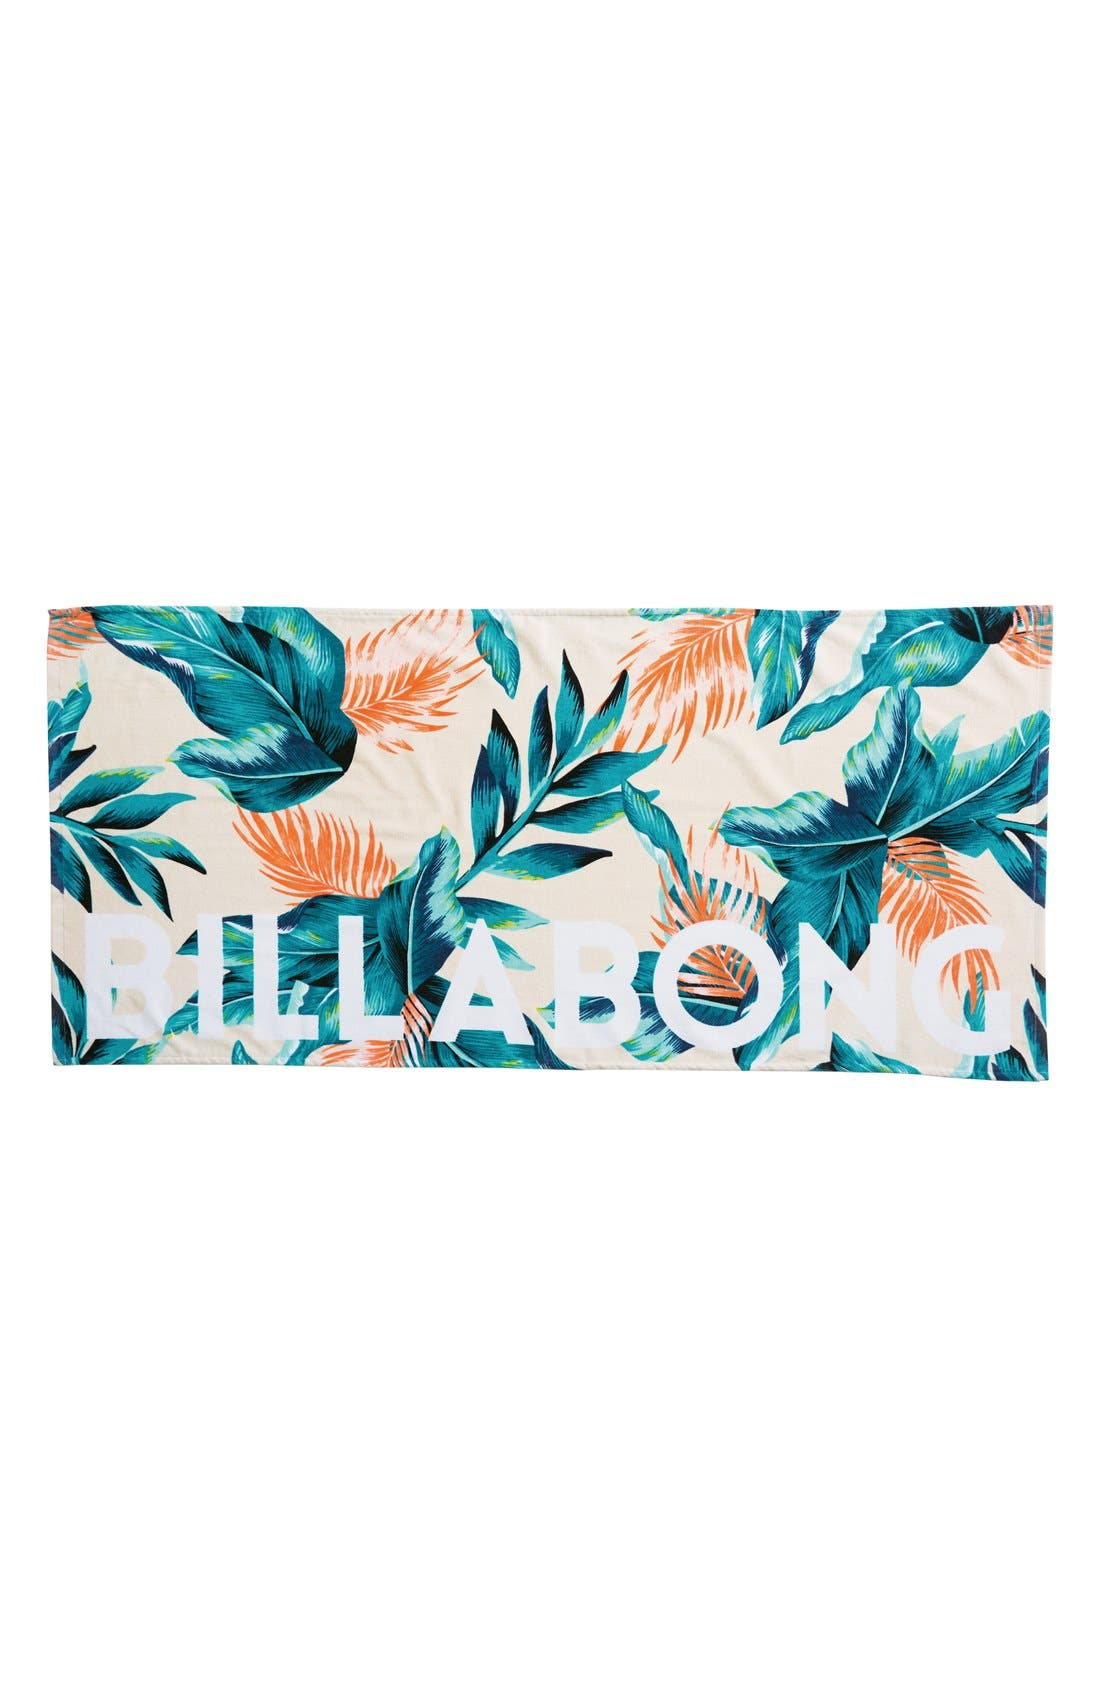 Alternate Image 1 Selected - Billabong 'Sunset Sounds' Cotton Terry Beach Towel